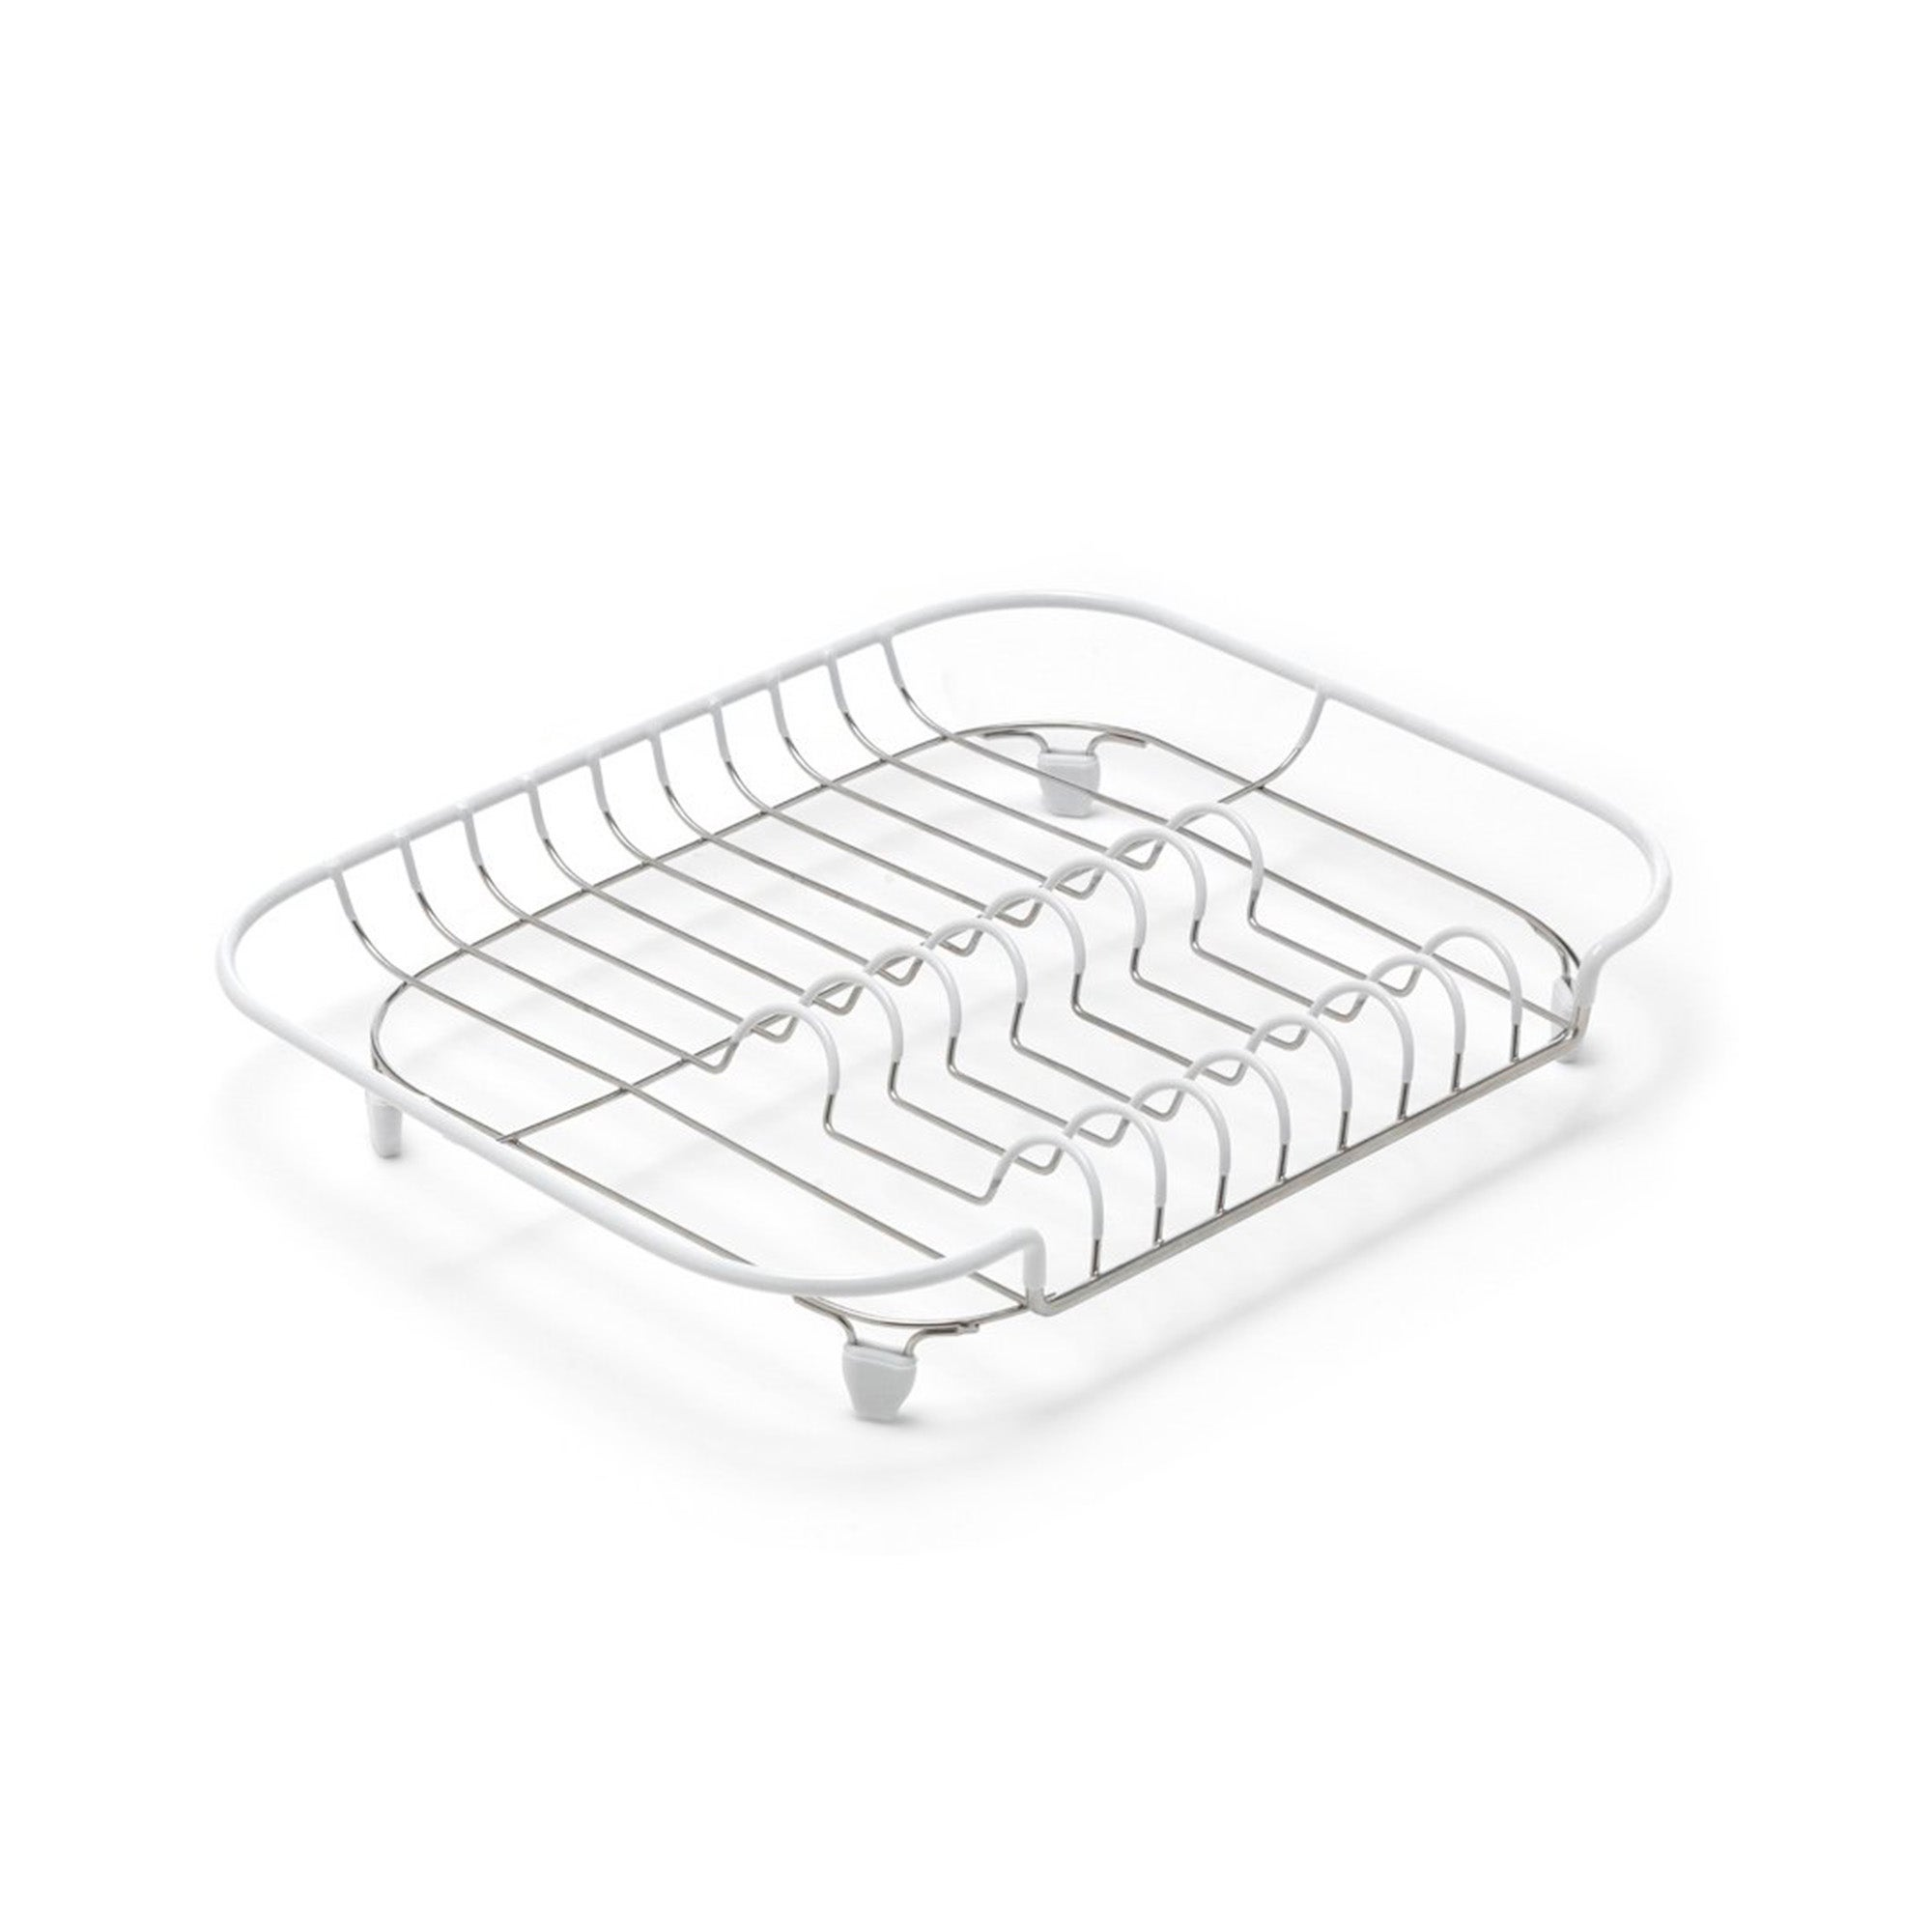 Photo of Addis compact draining rack silver